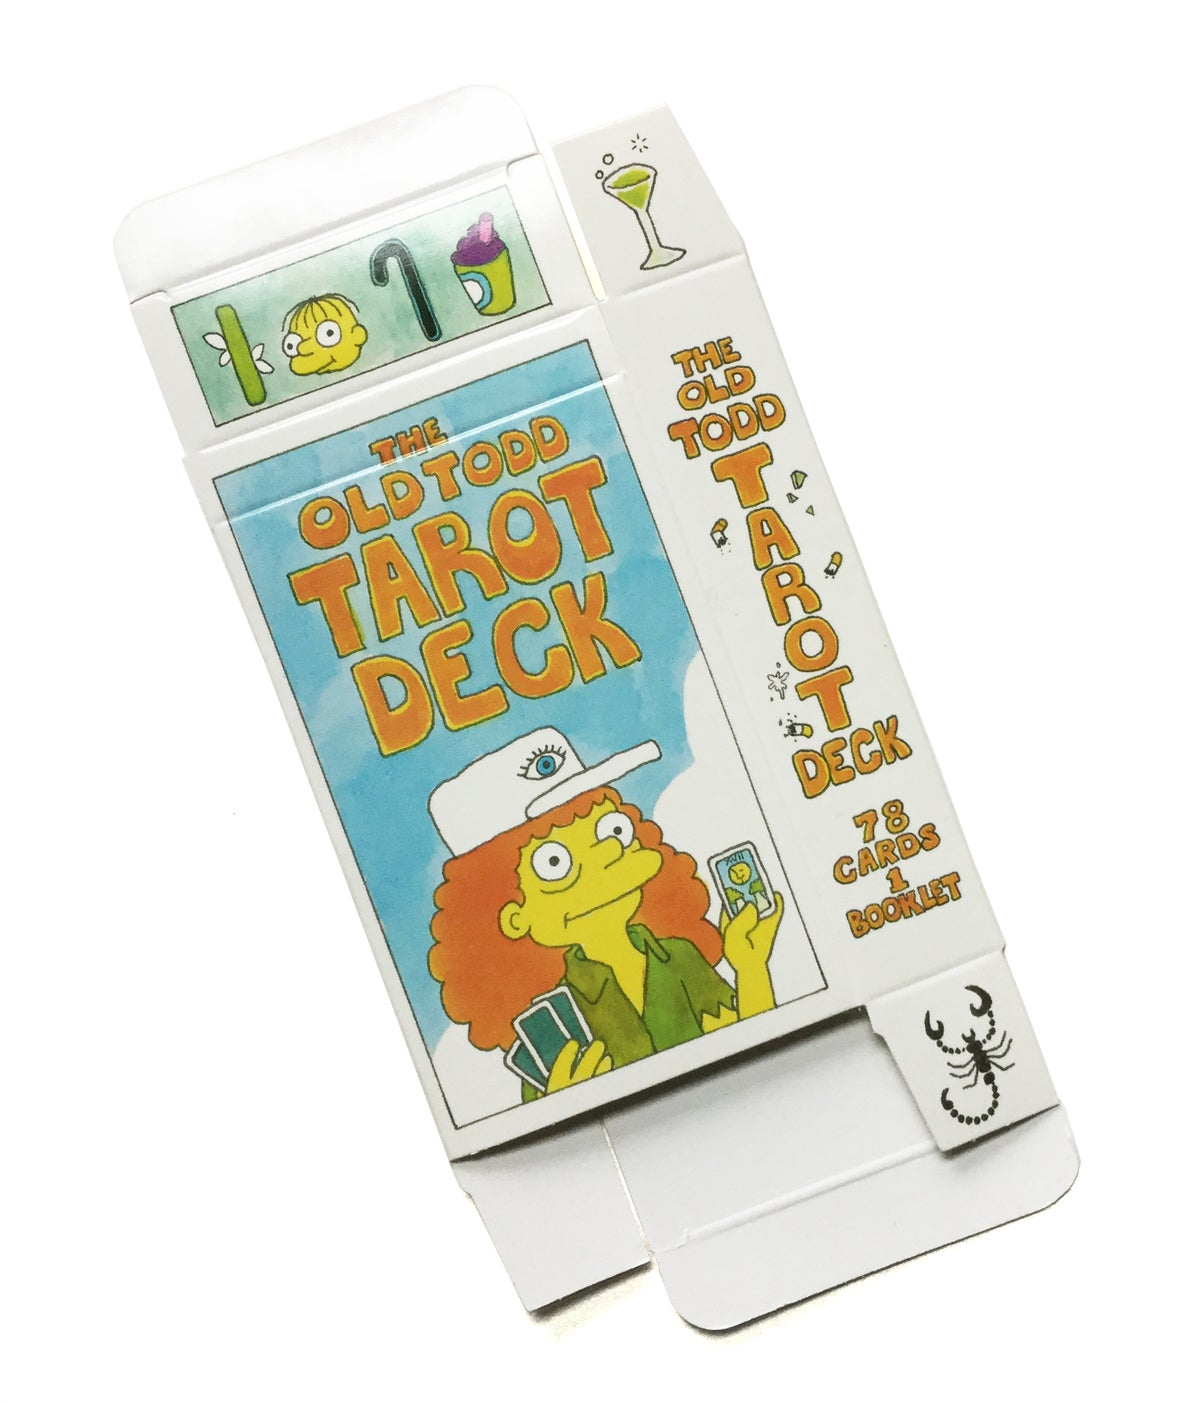 Image of Replacement Box for Old Todd Tarot Deck